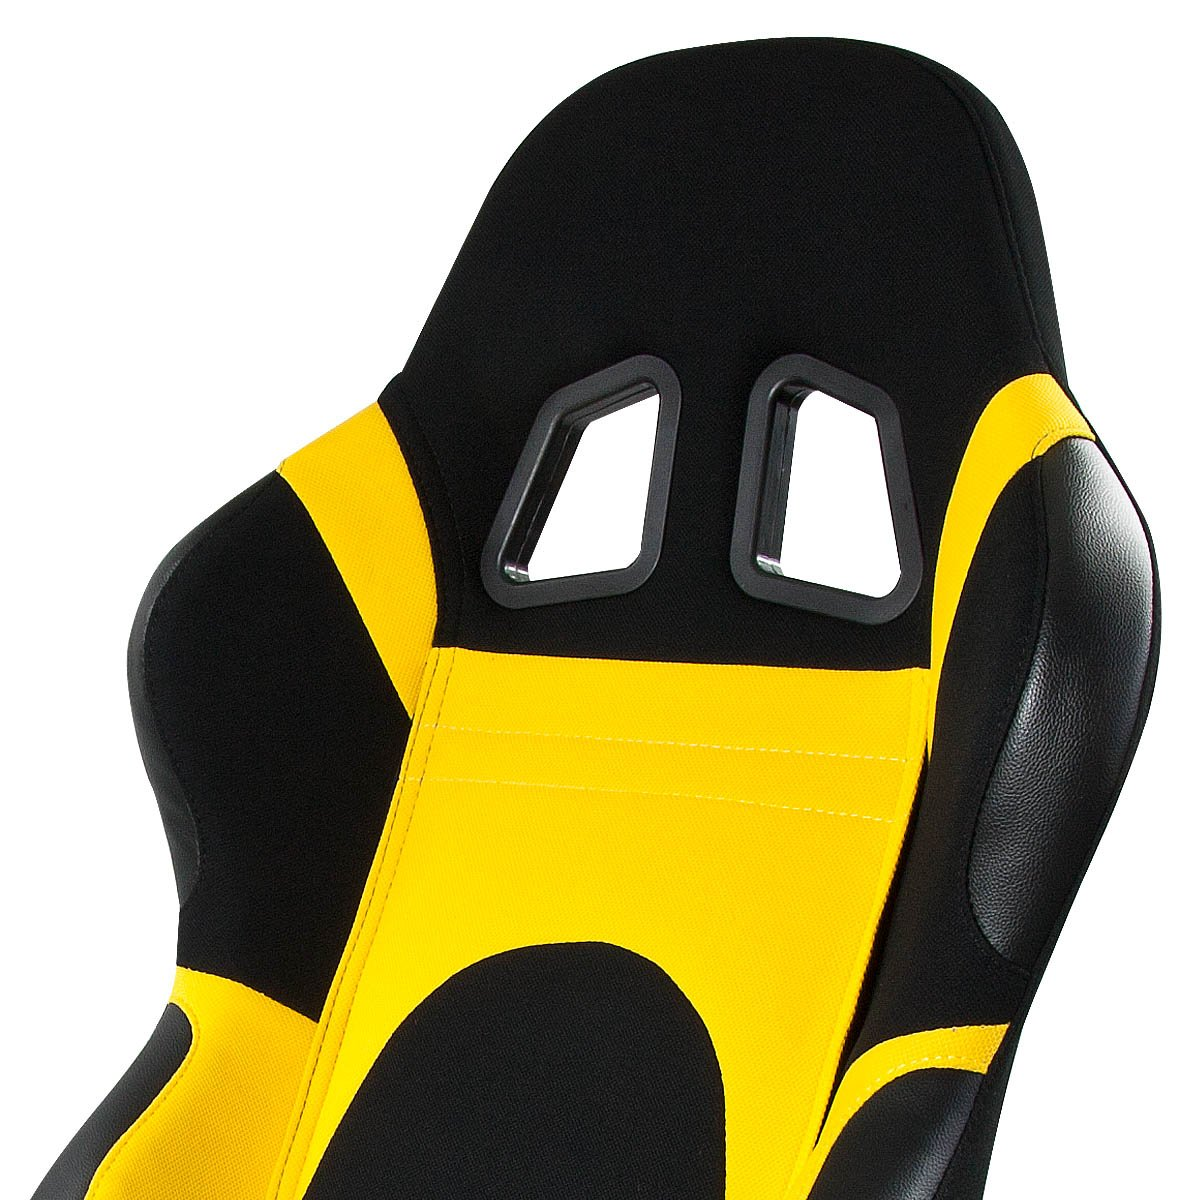 Universal Full-Reclinable Yellow Sport Racing Seat With Black Trim Right